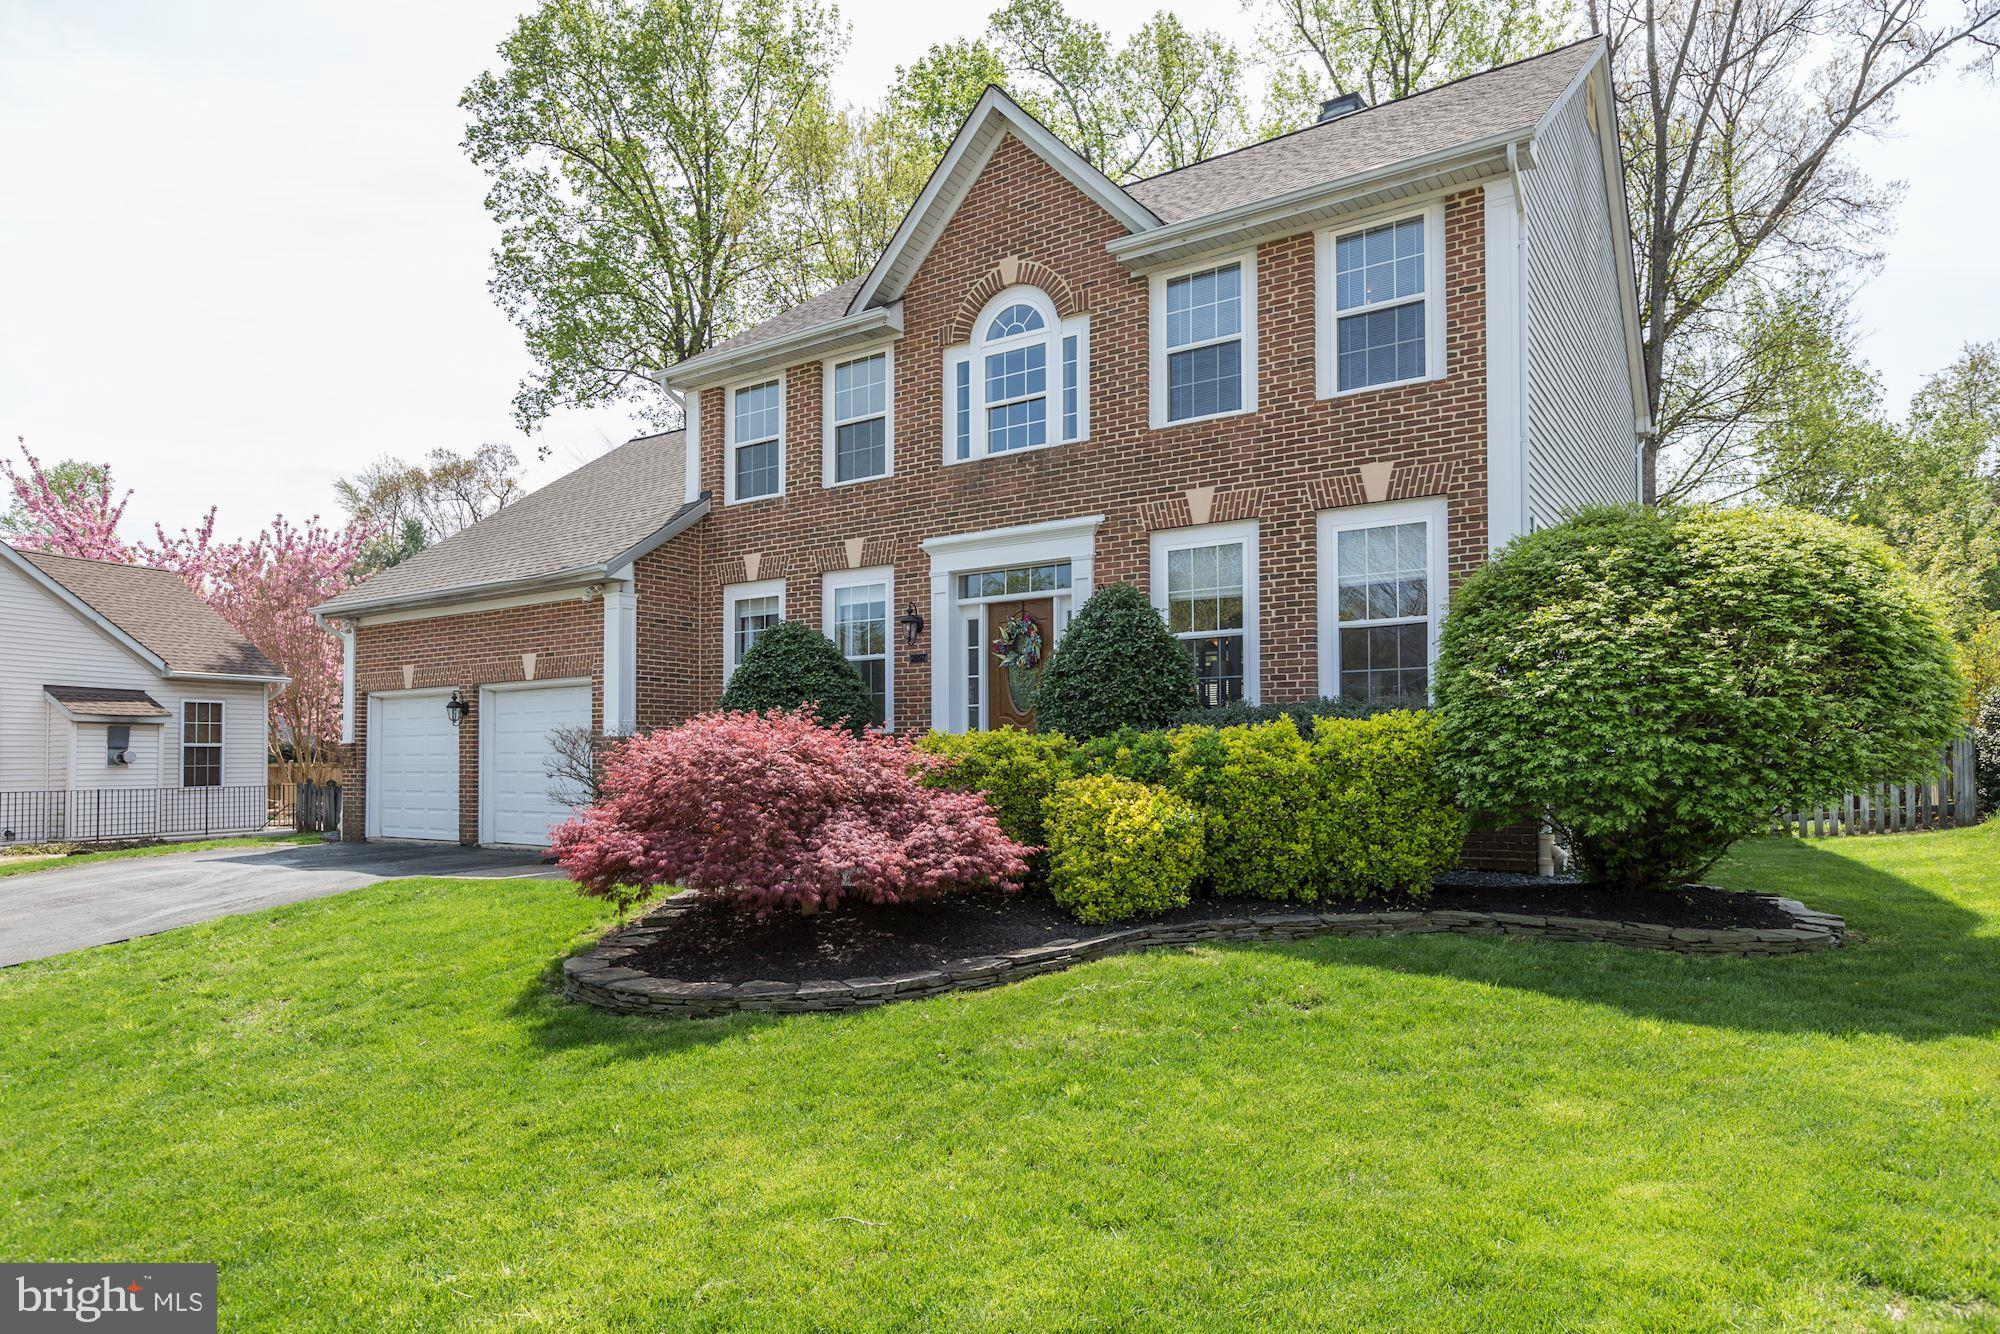 2897 WILLOW WOOD COURT, CROFTON, MD 21114